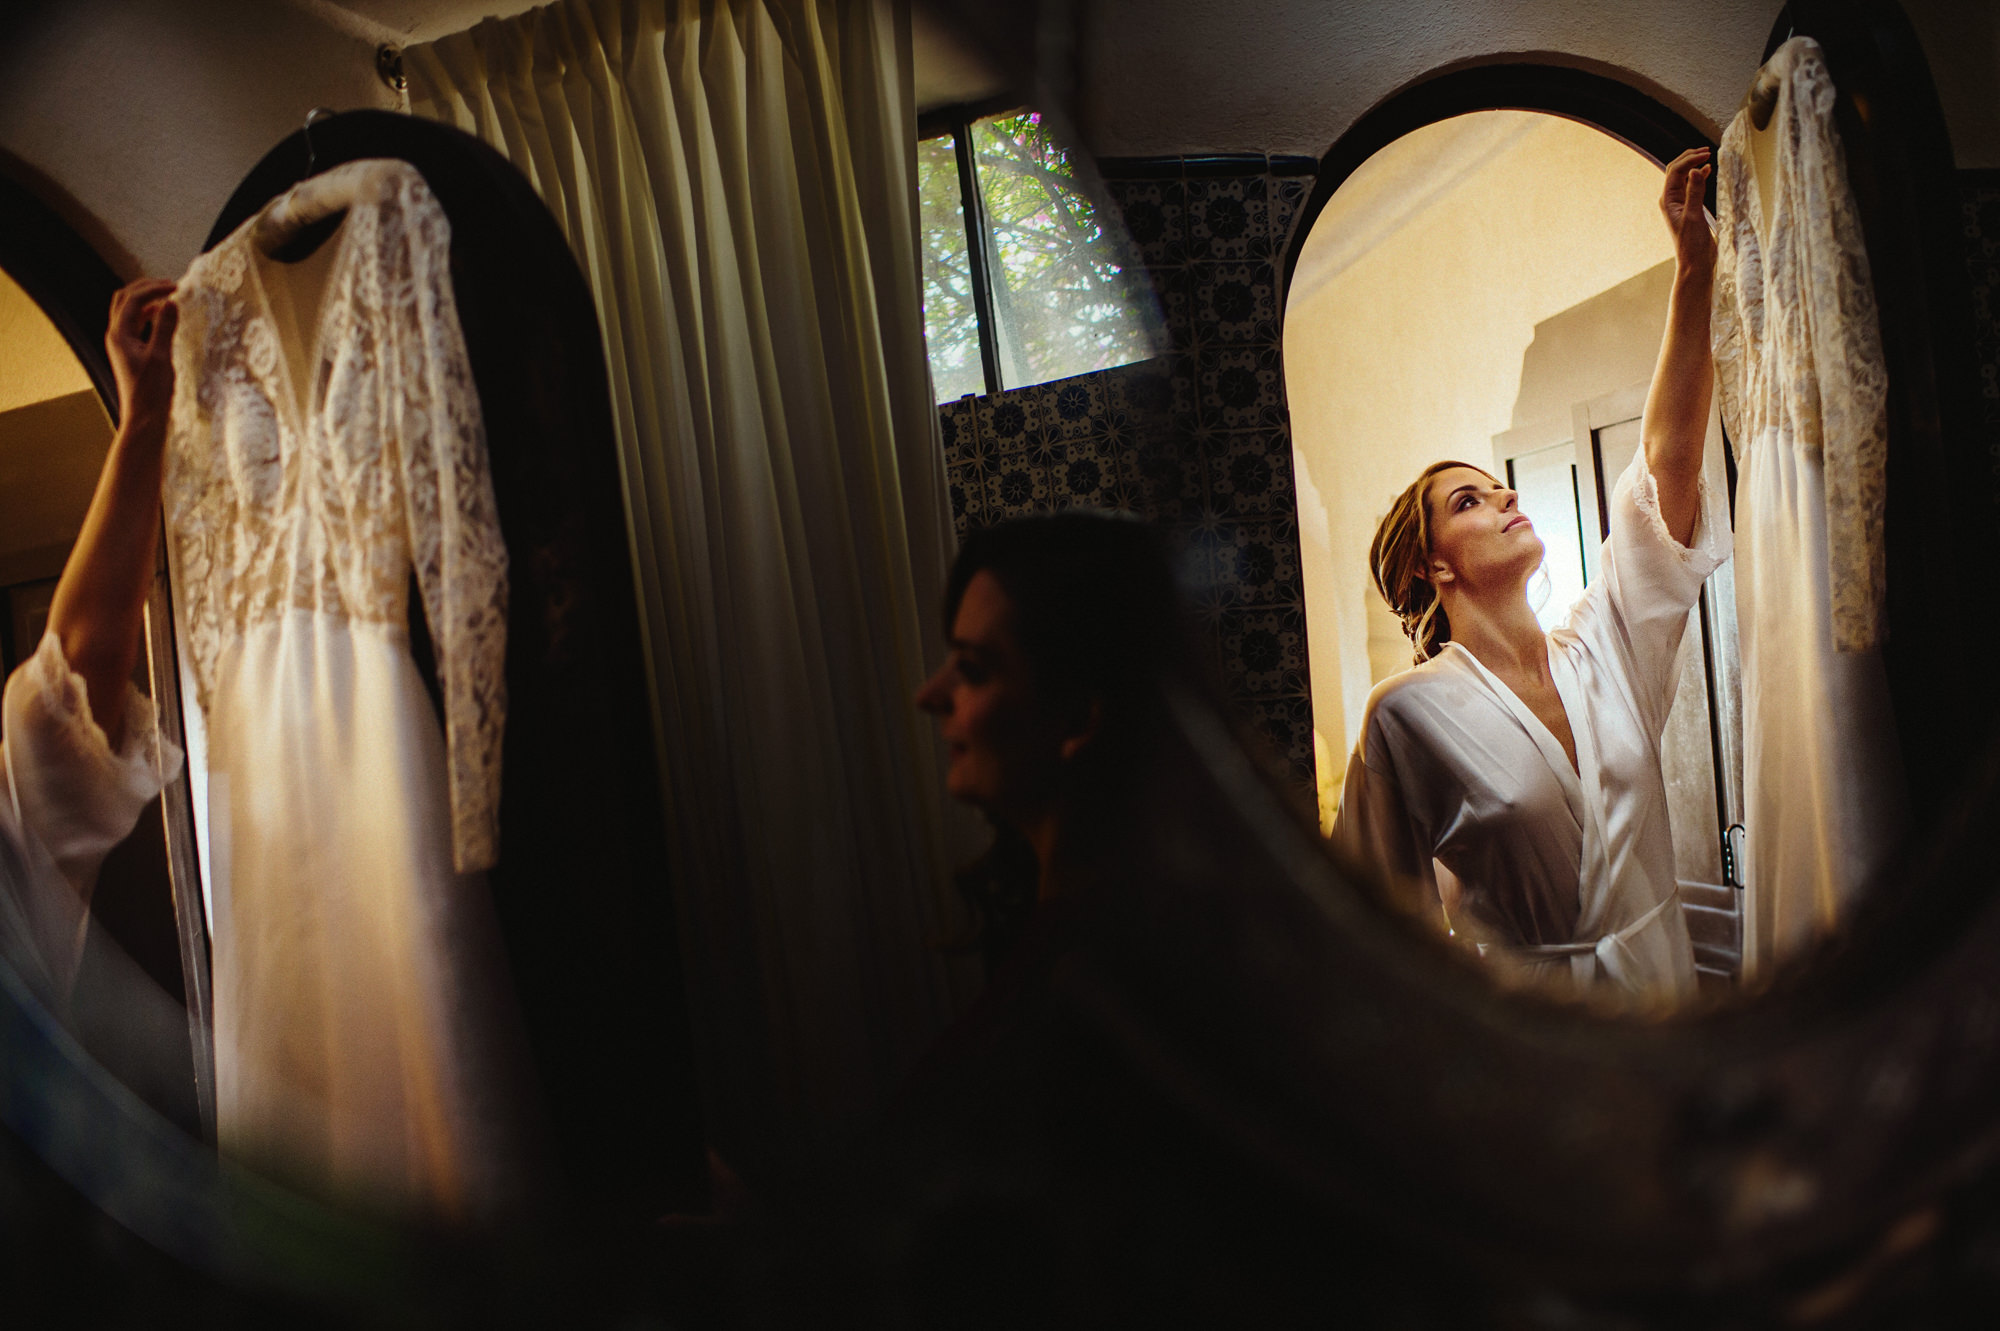 Reflection of bride reaching for her wedding dress - photographed by Fer Juaristi, Mexico